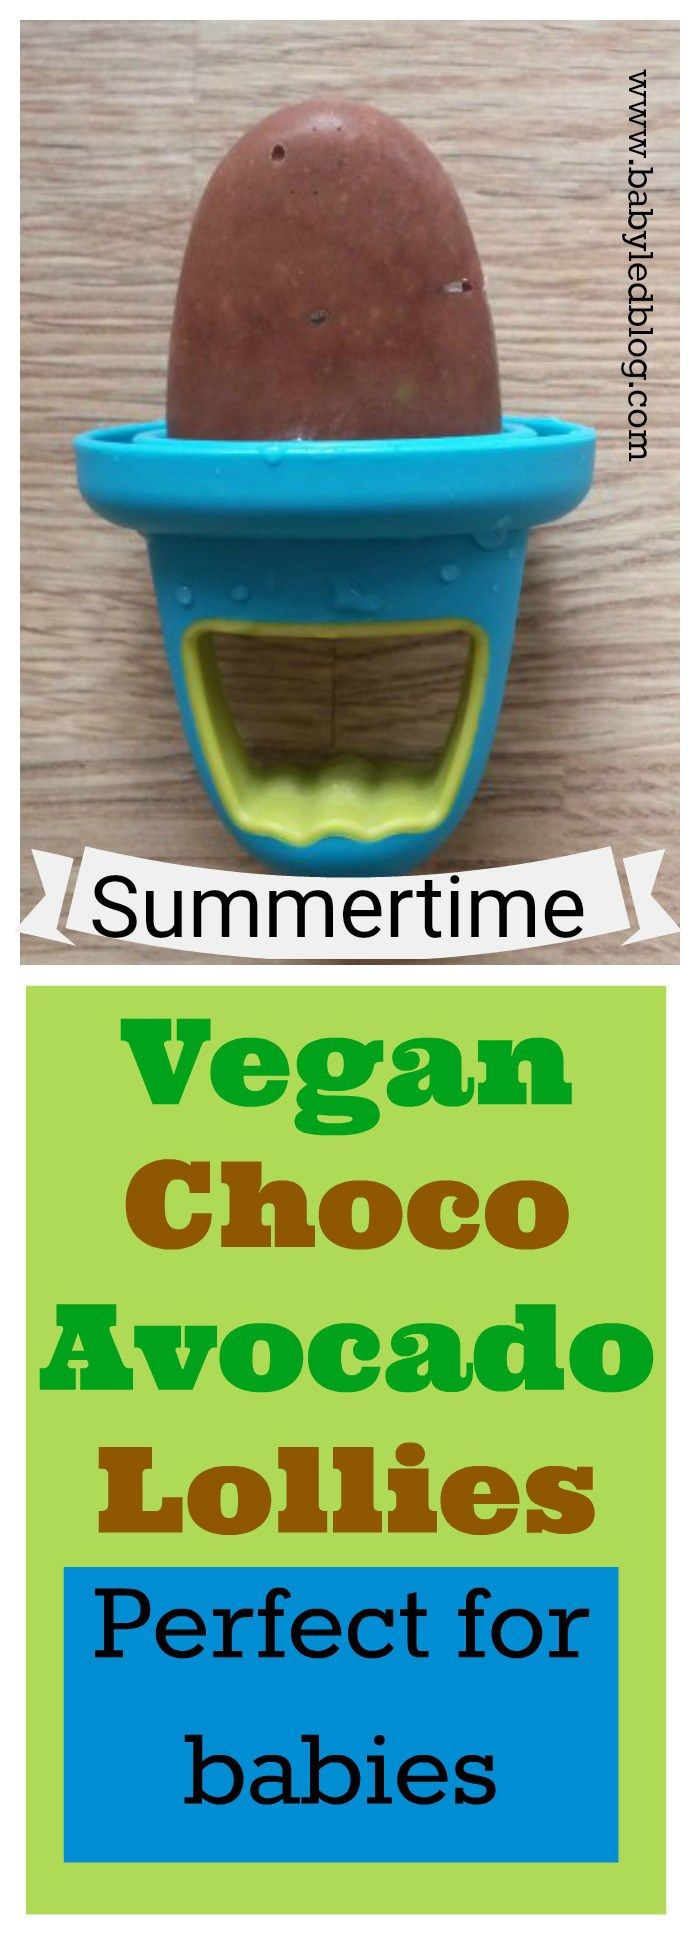 Vegan avocado chocolate lollies. A perfect summertime treat for babies and toddlers. Quick, easy and healthy!